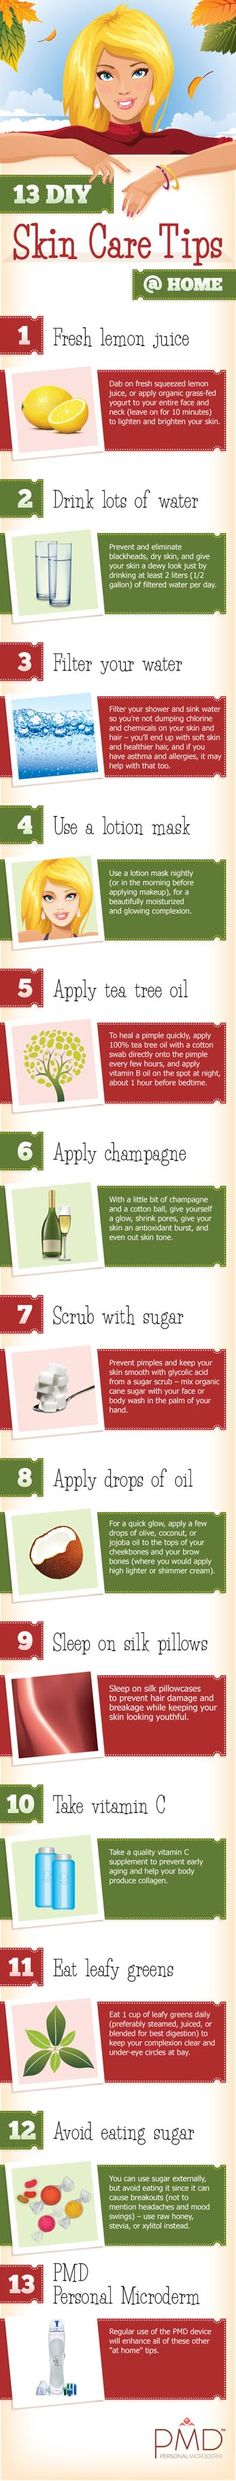 13 DIY Skin Recipe Tips @ Home!